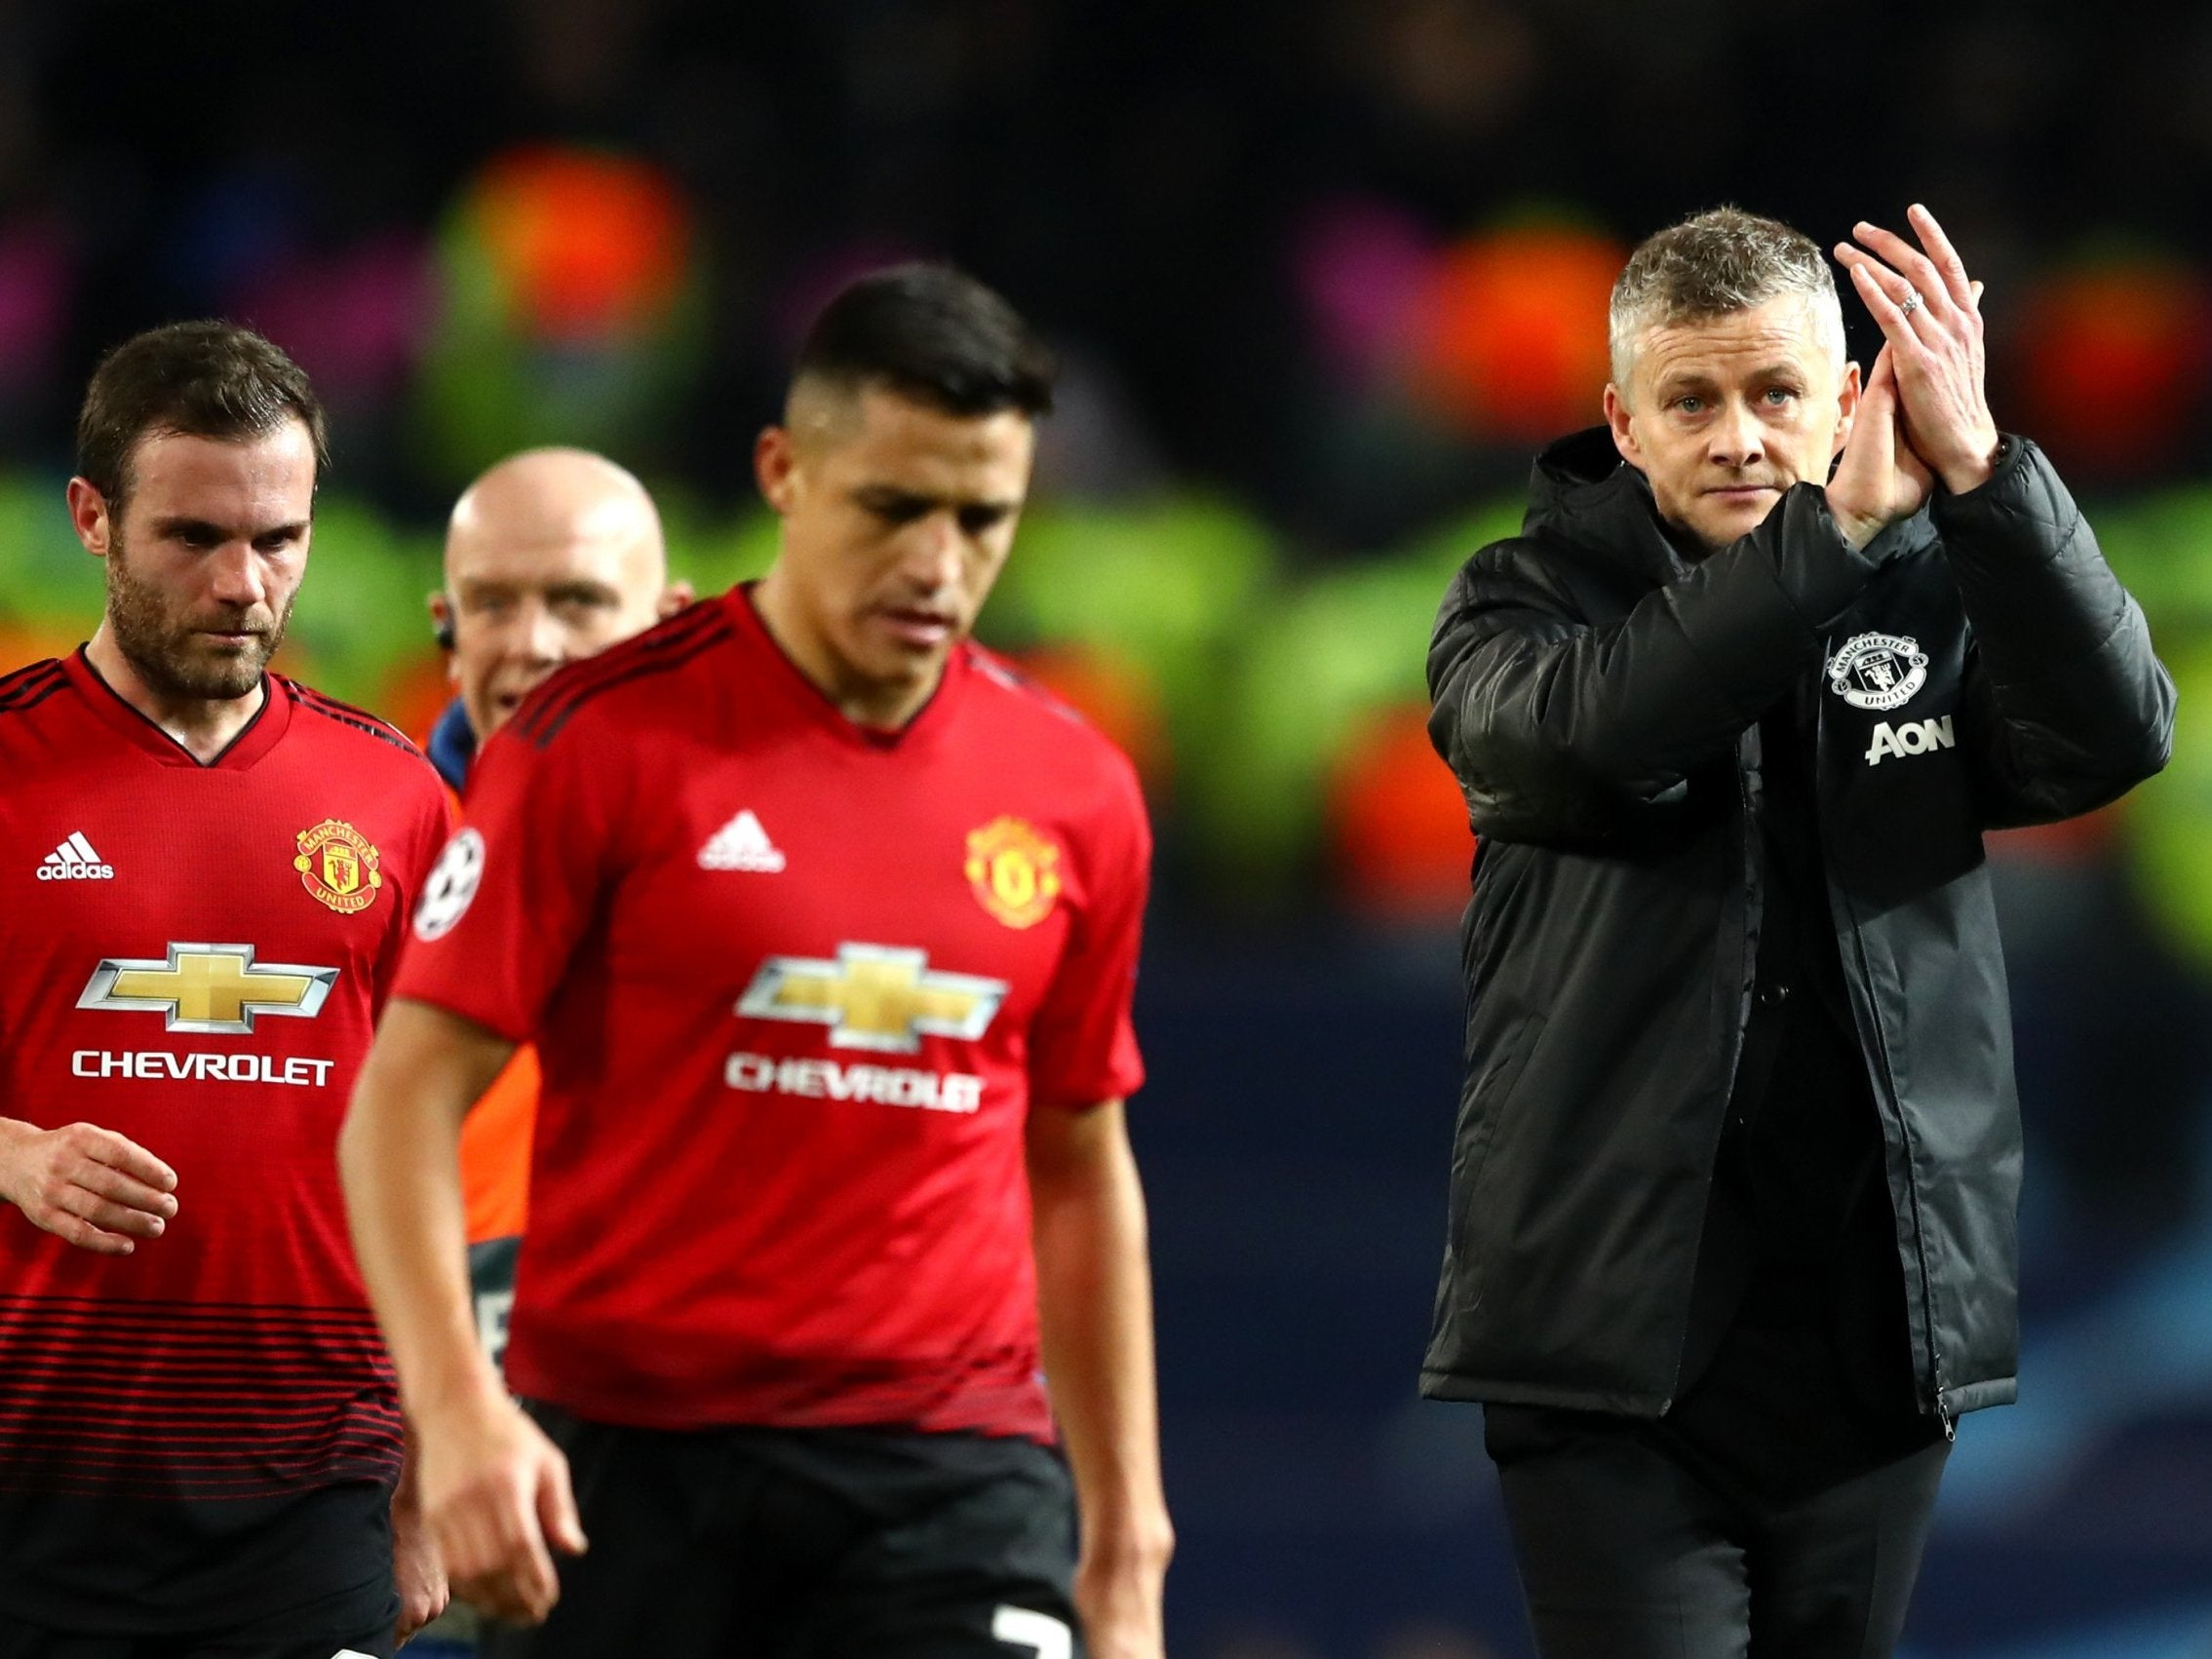 Manchester United's Champions League Defeat By PSG Leaves